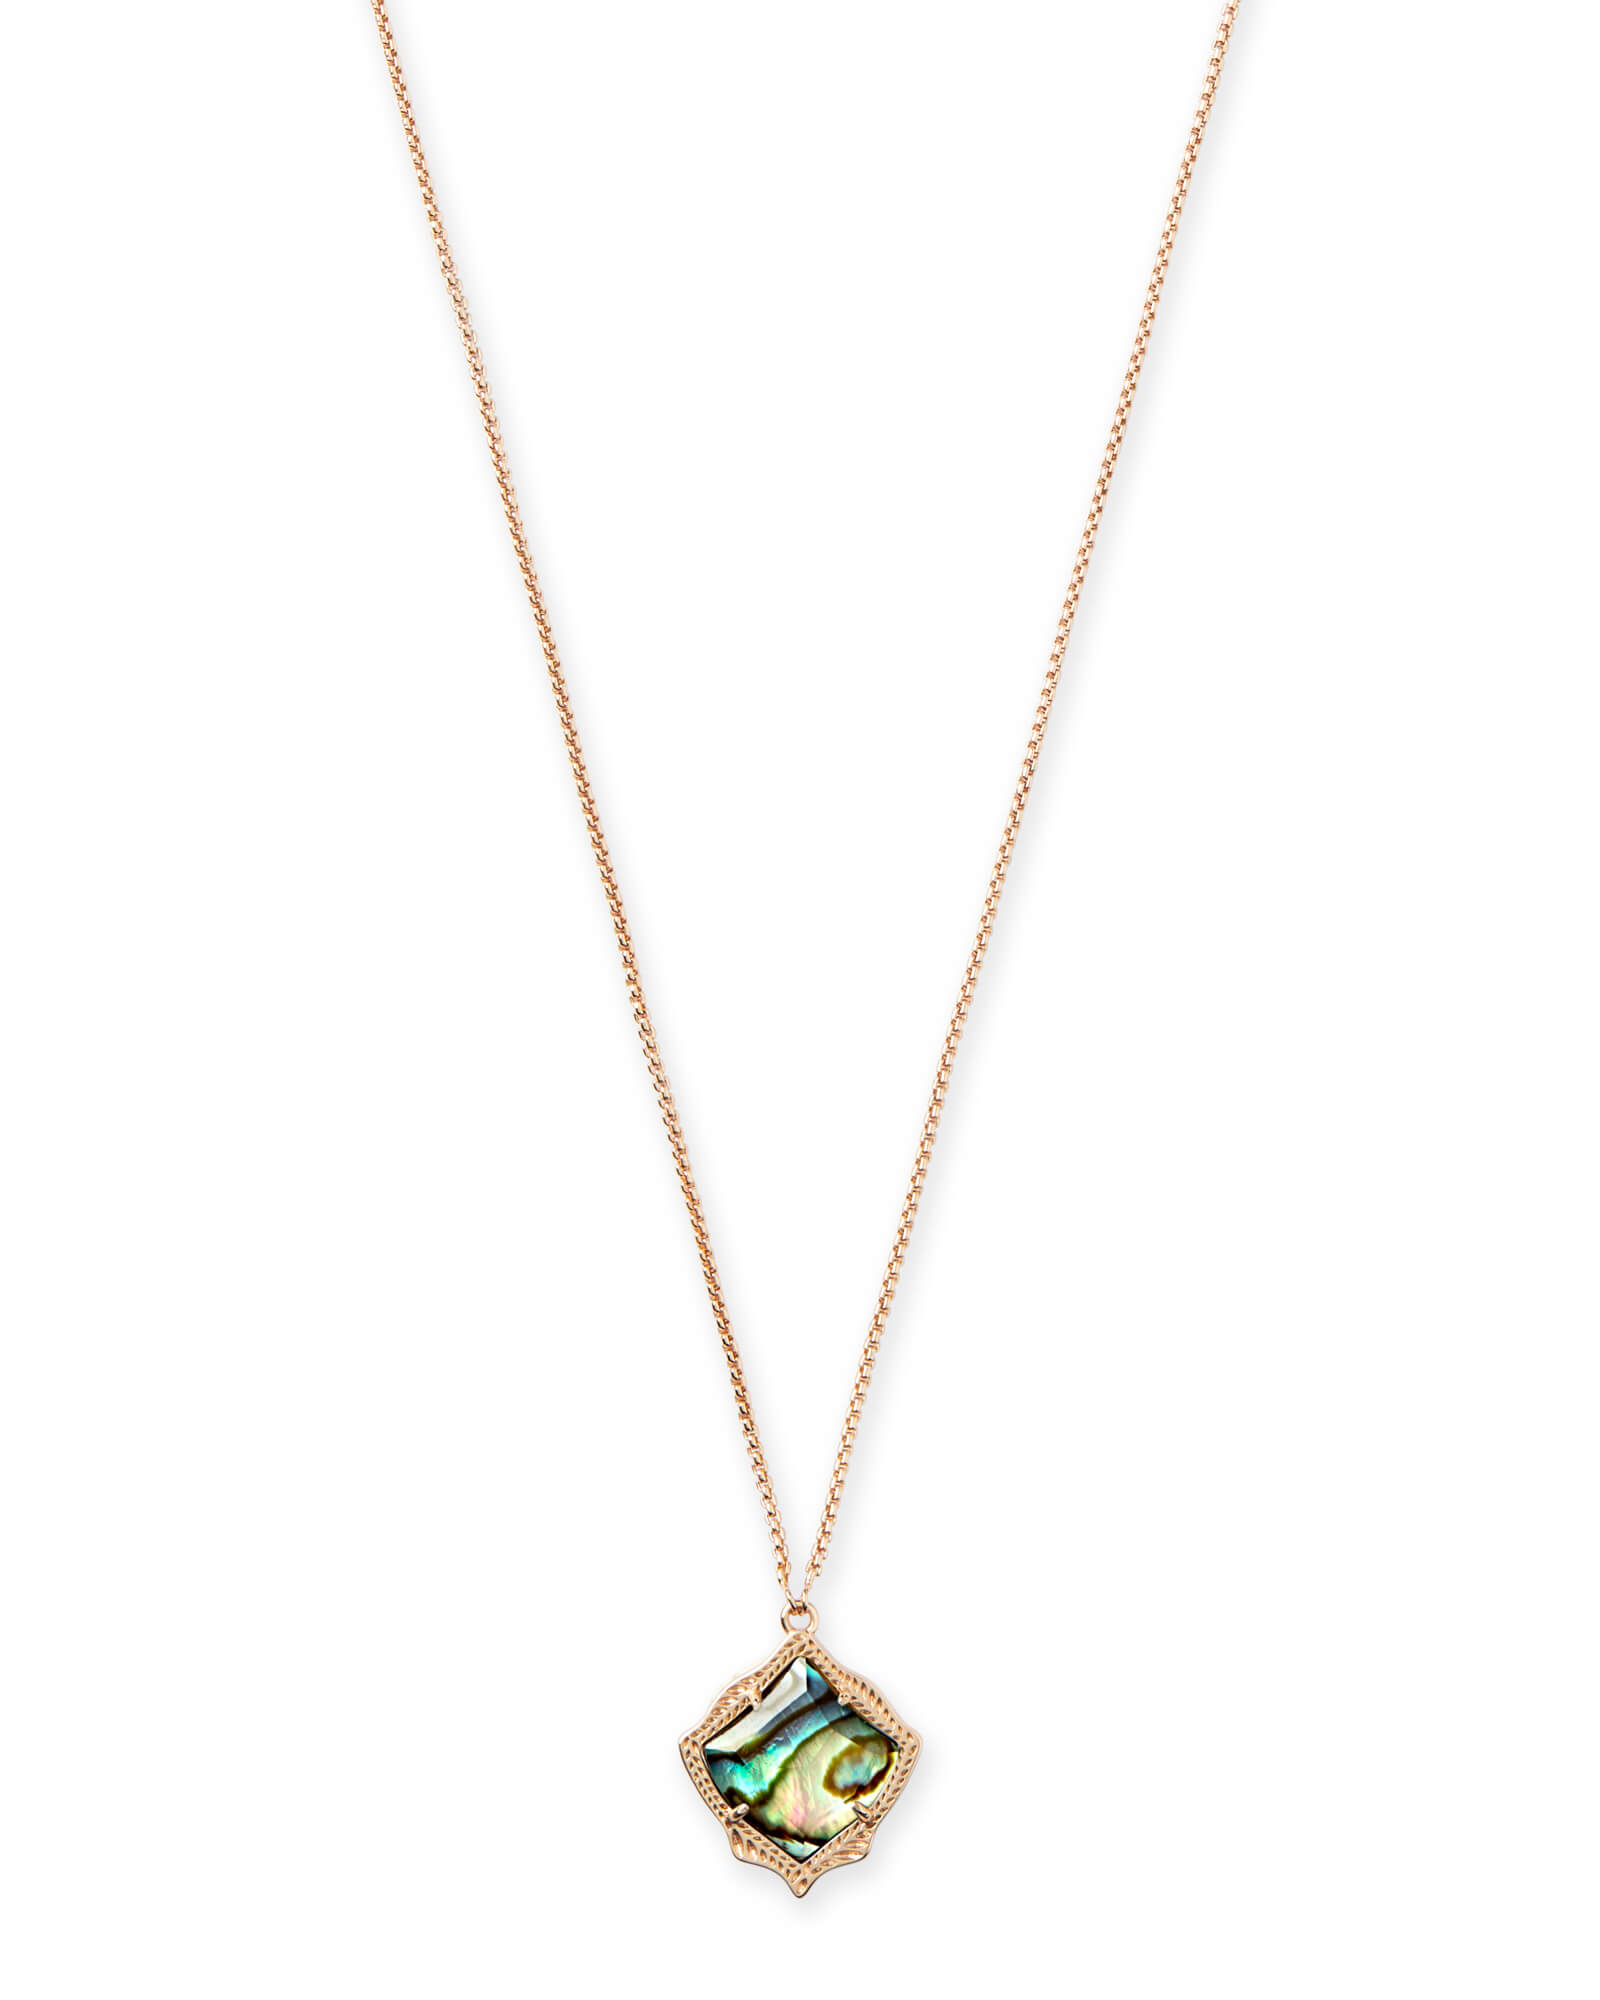 Kendra Scott Kacey Rose Gold Long Pendant Necklace In Abalone Shell by Kendra Scott